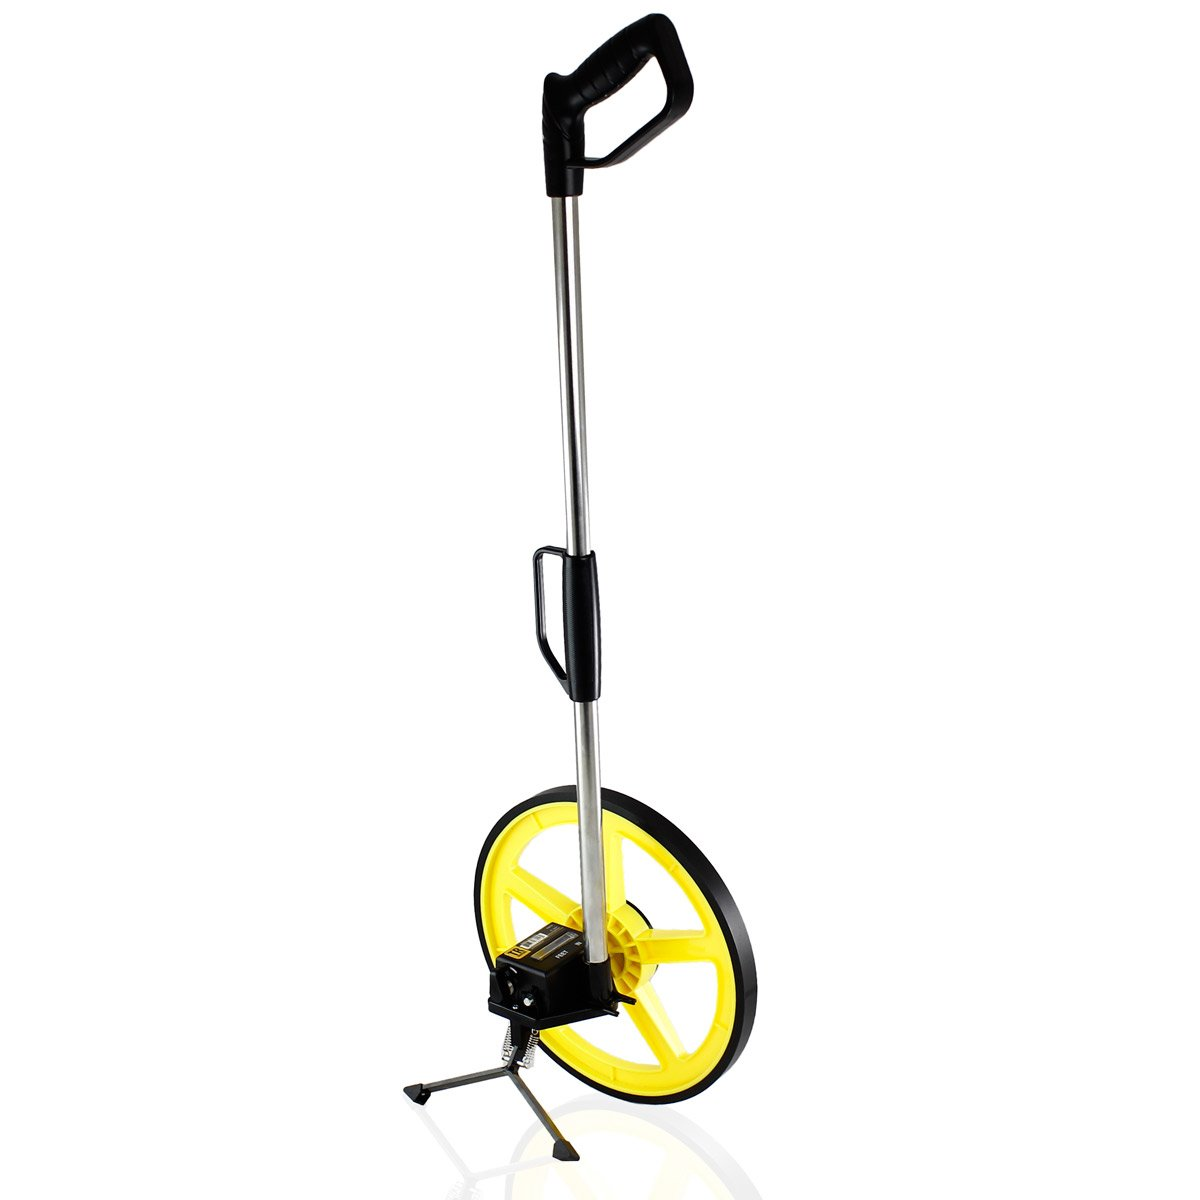 TR Industrial 88016 FX Series Collapsible Measuring Wheel, Yellow/Black by TR Industrial